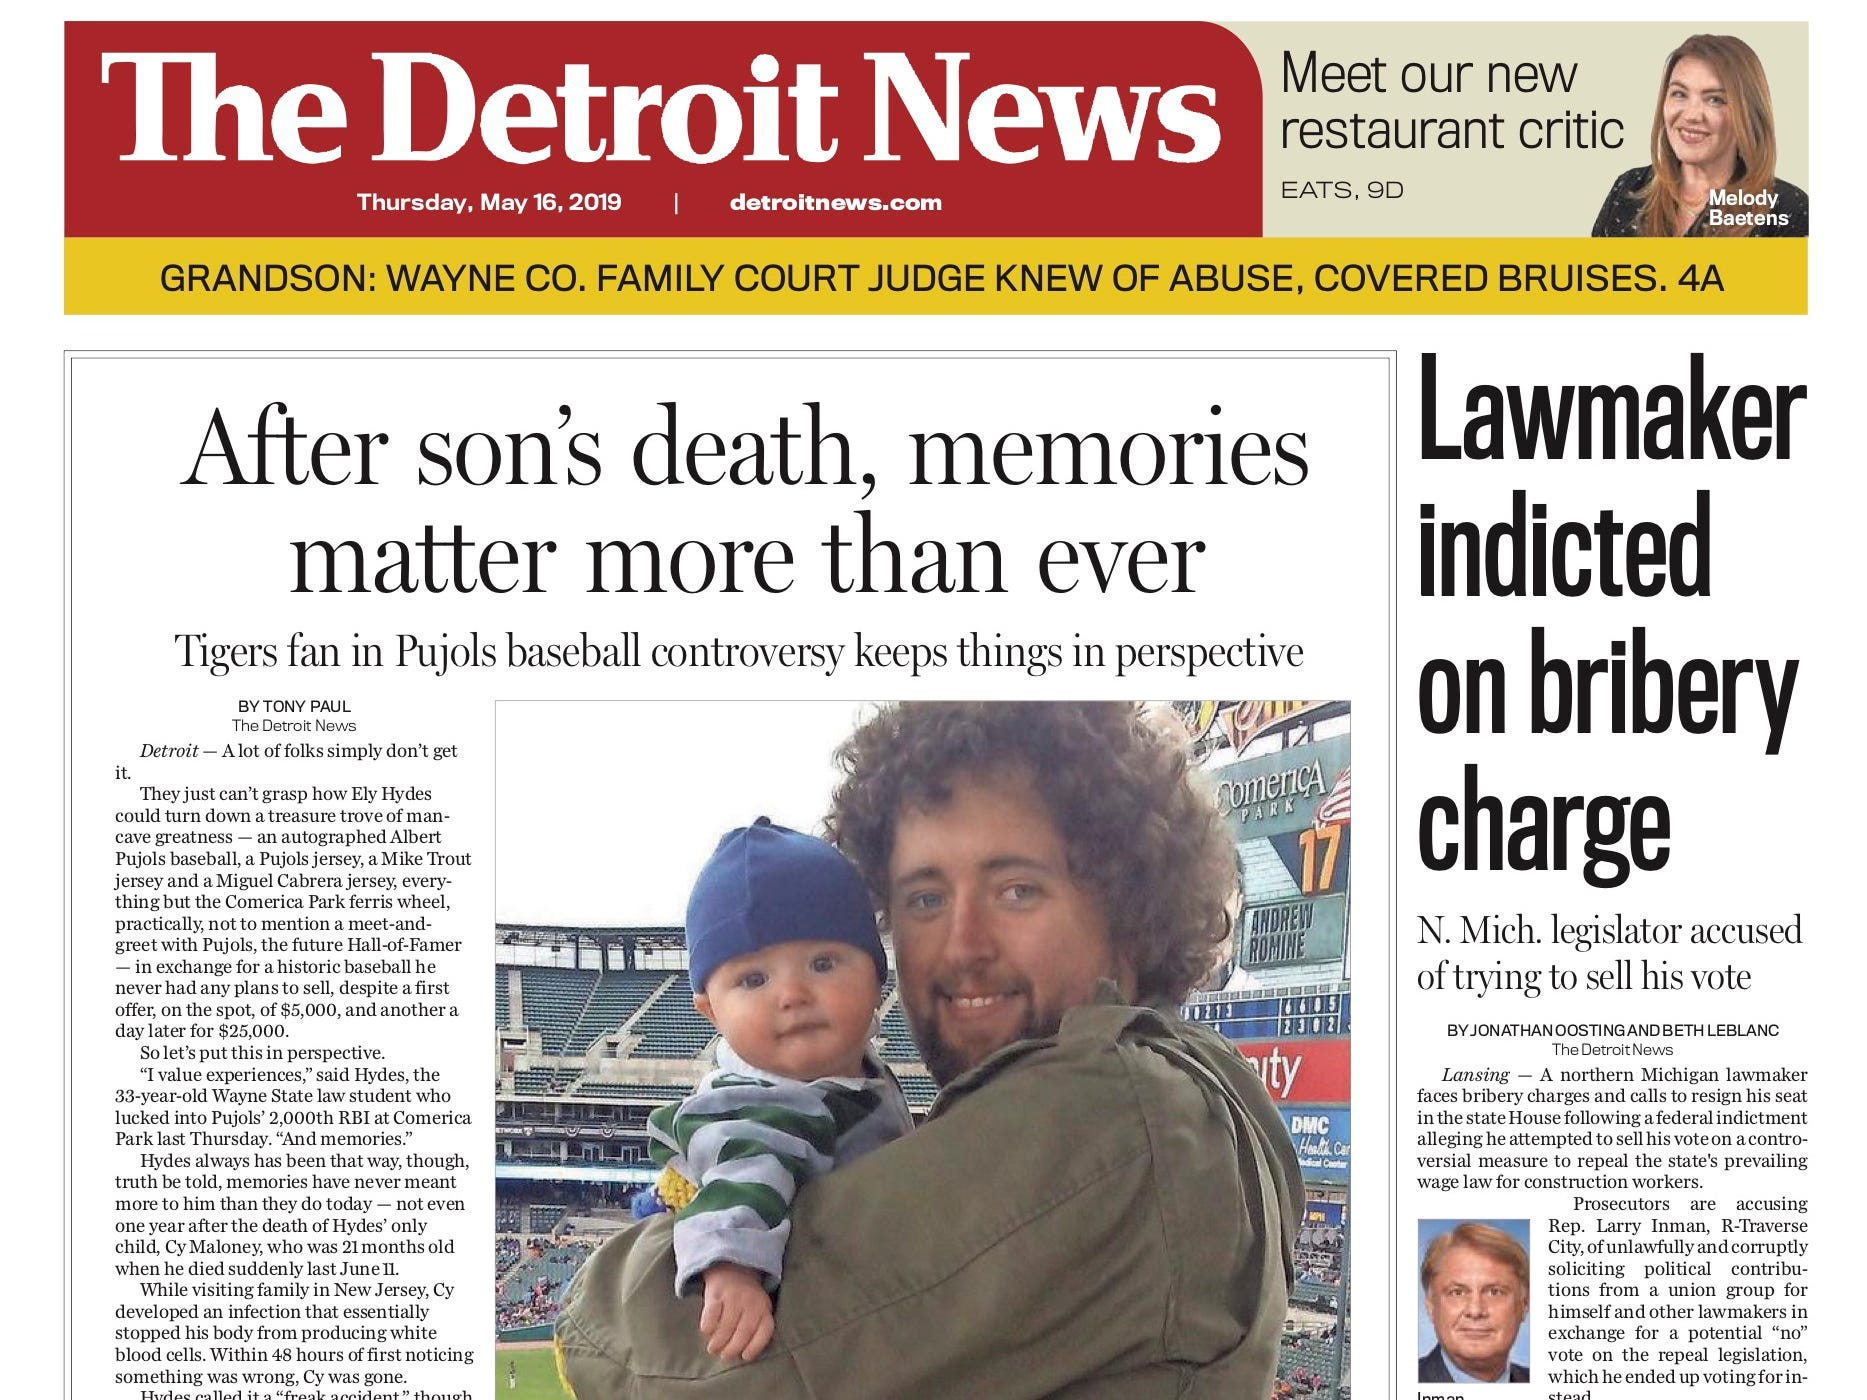 The front page of the Detroit News on May 16, 2019